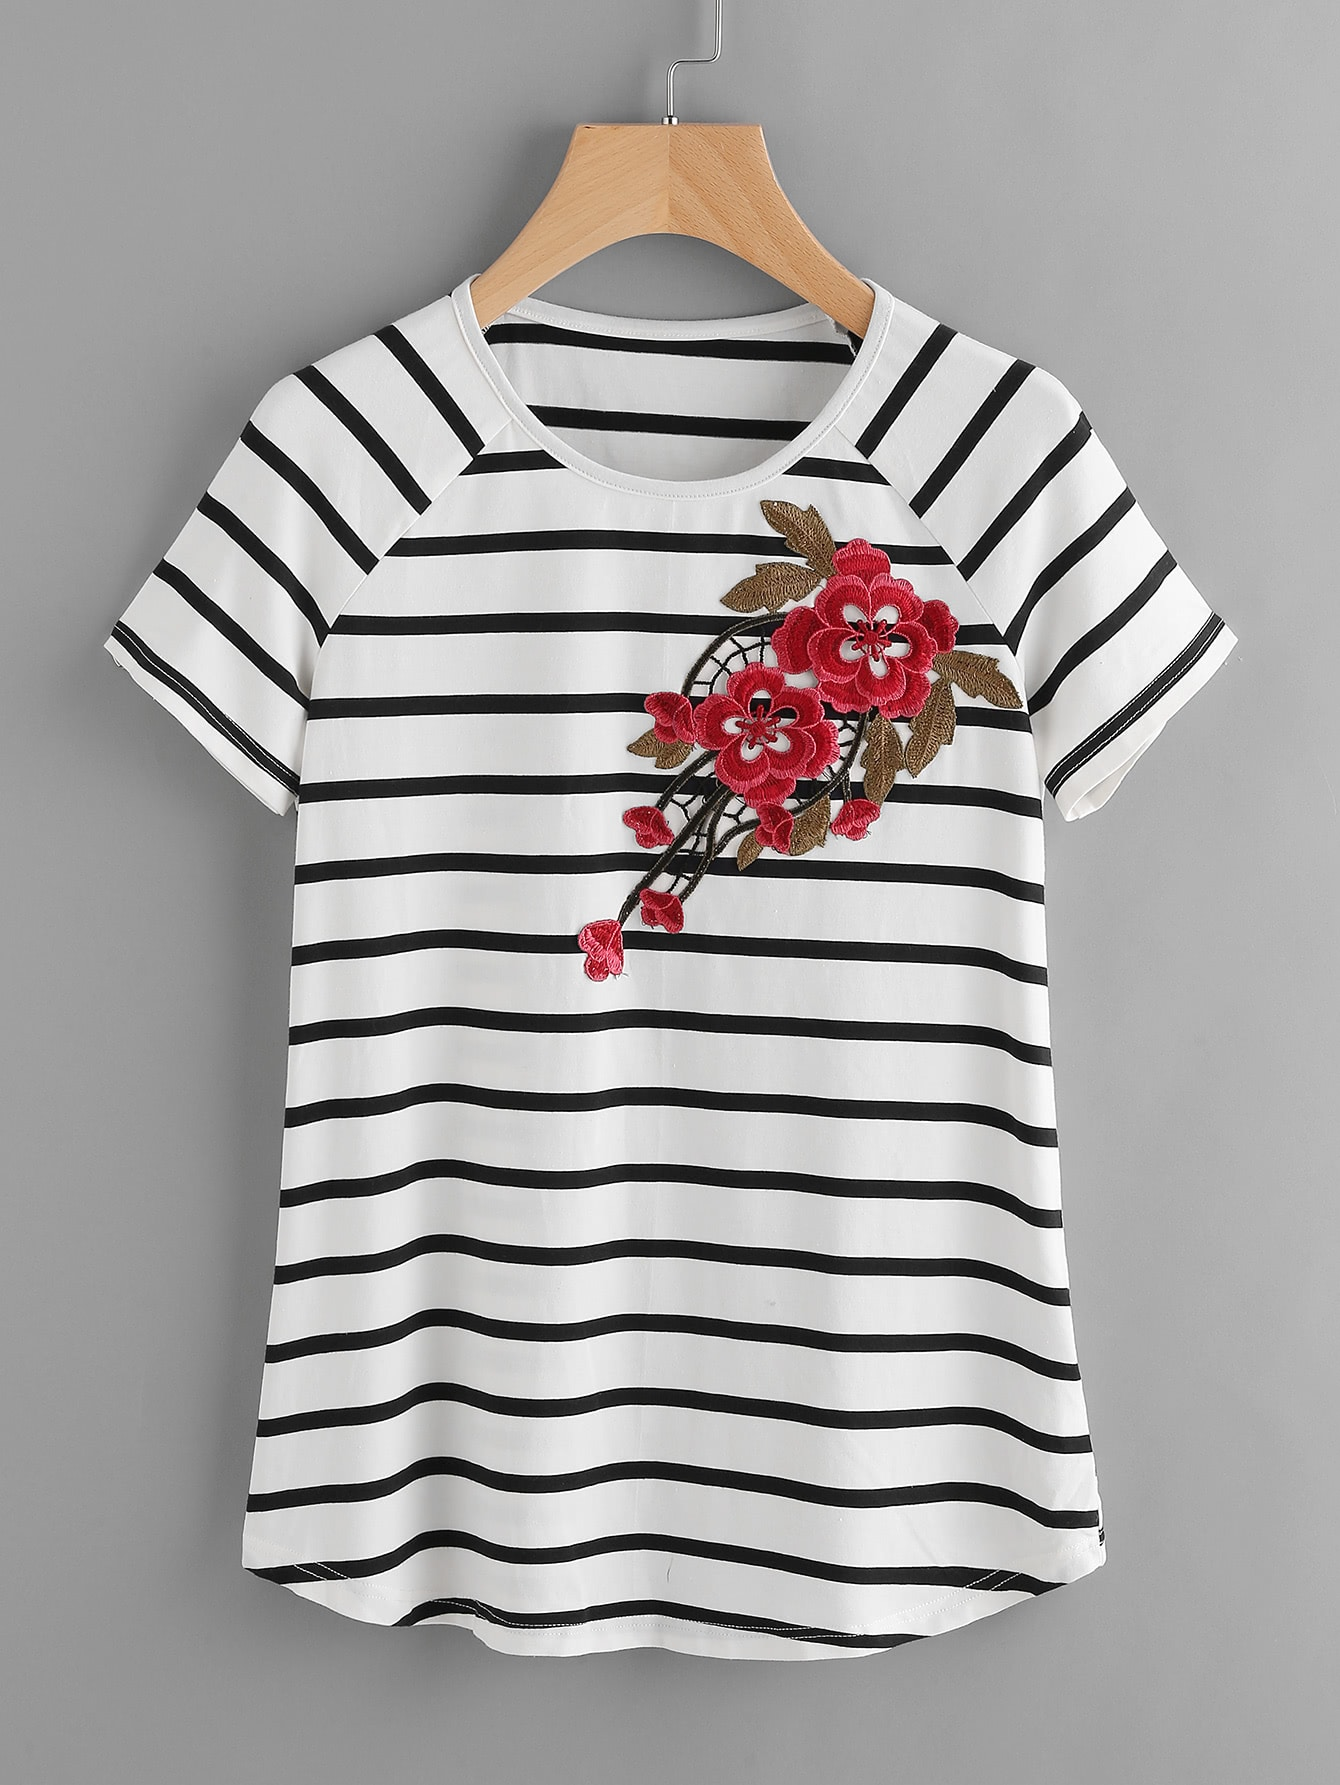 Striped Raglan Sleeve Embroidered Flower Patch T-shirt tee170405704